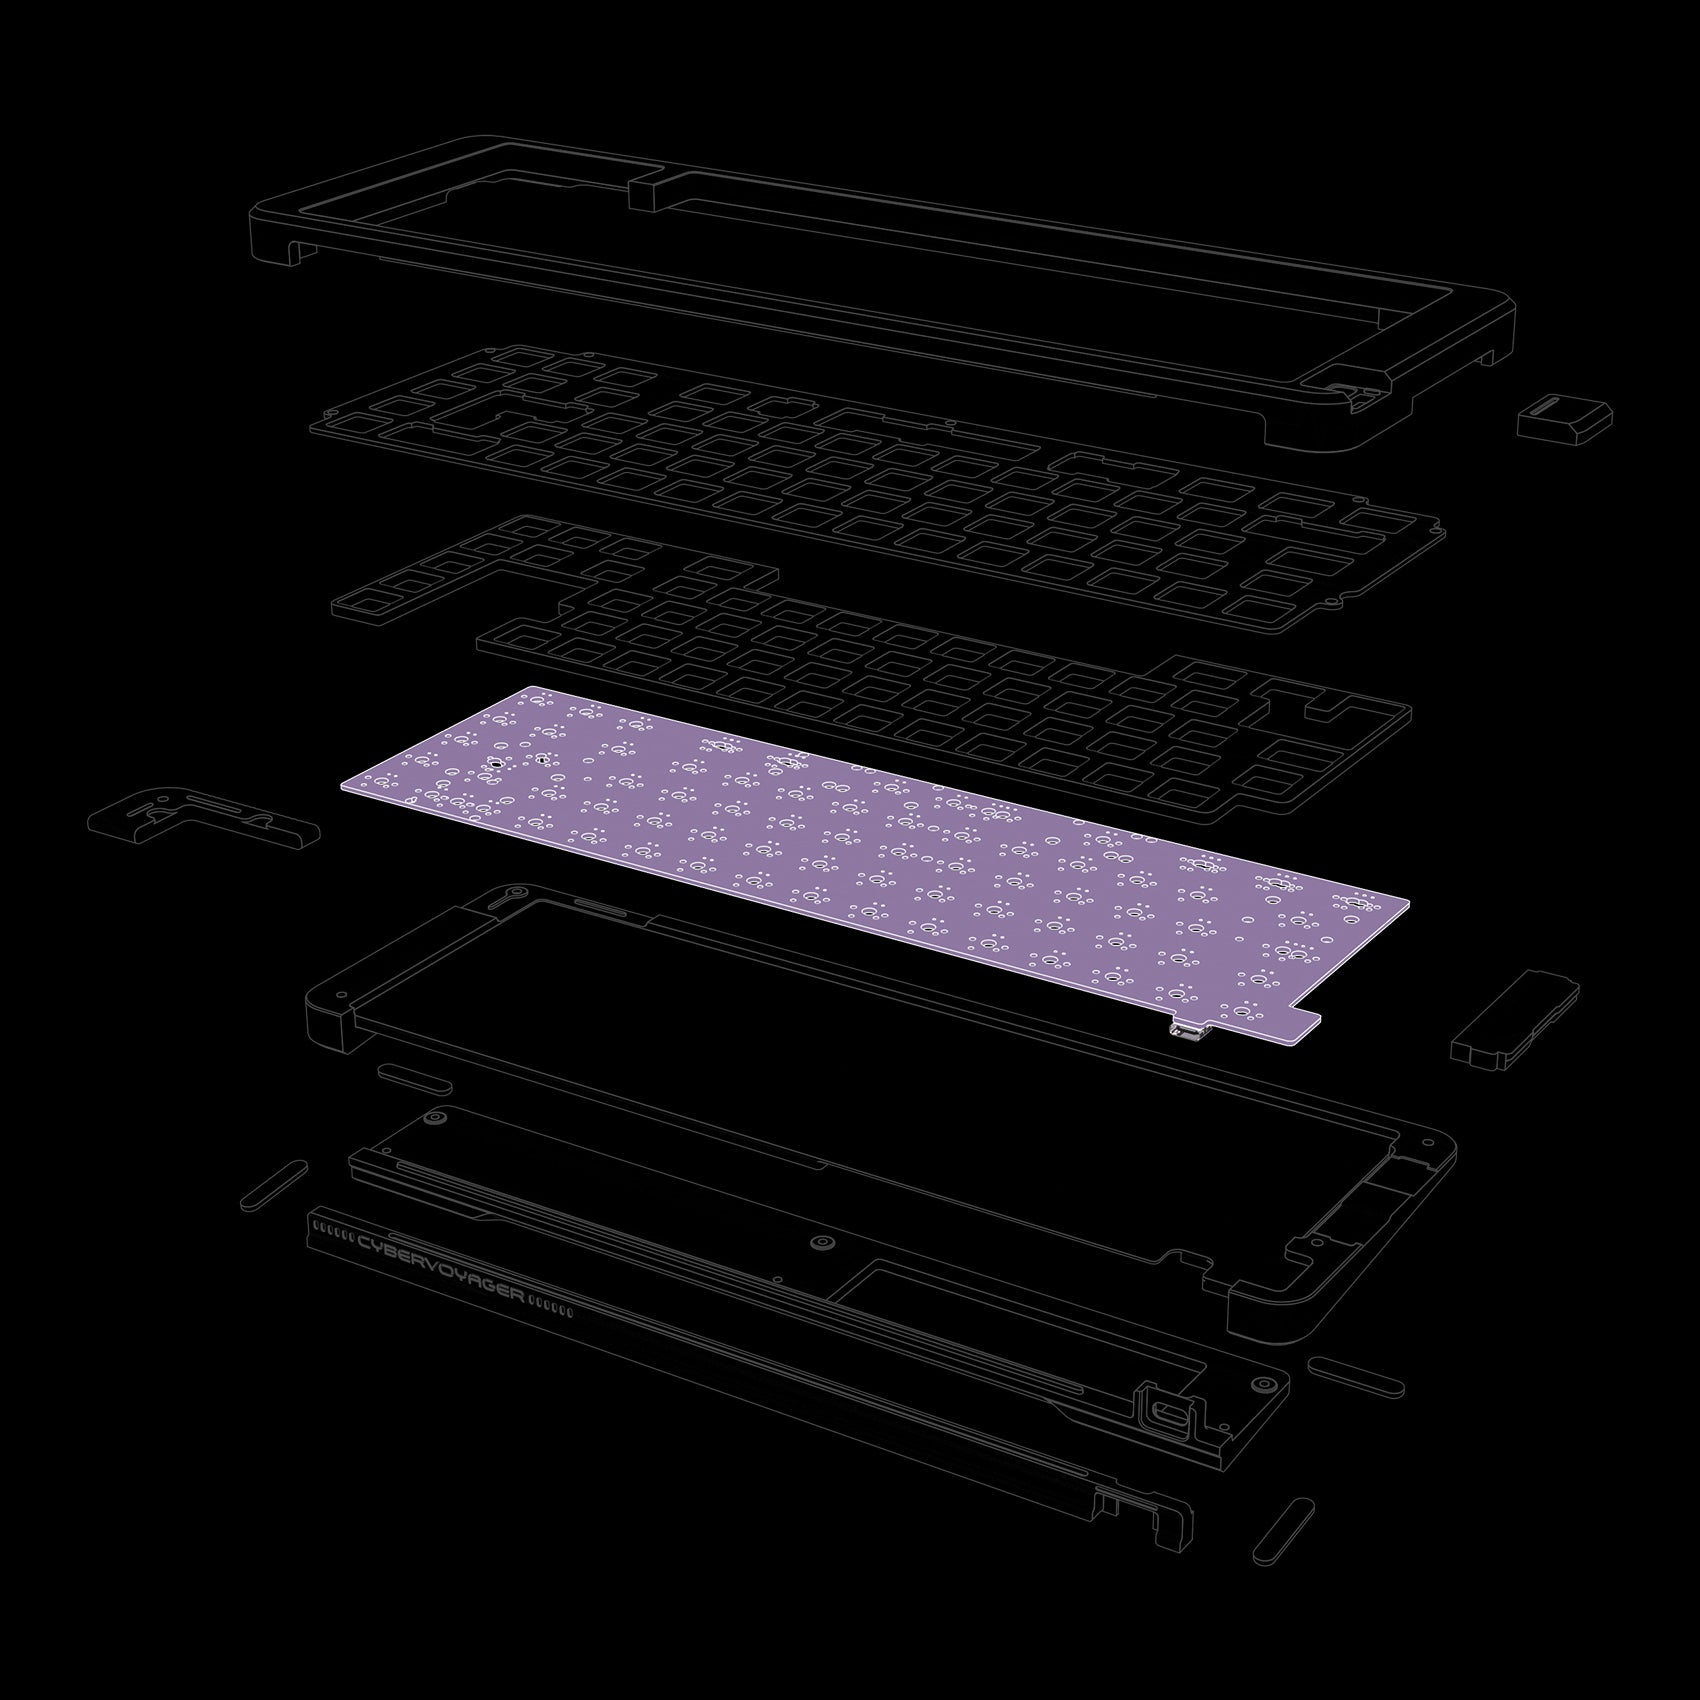 [GB] Extras of Space65:CyberVoyager (PCBs, Pads, etc.)